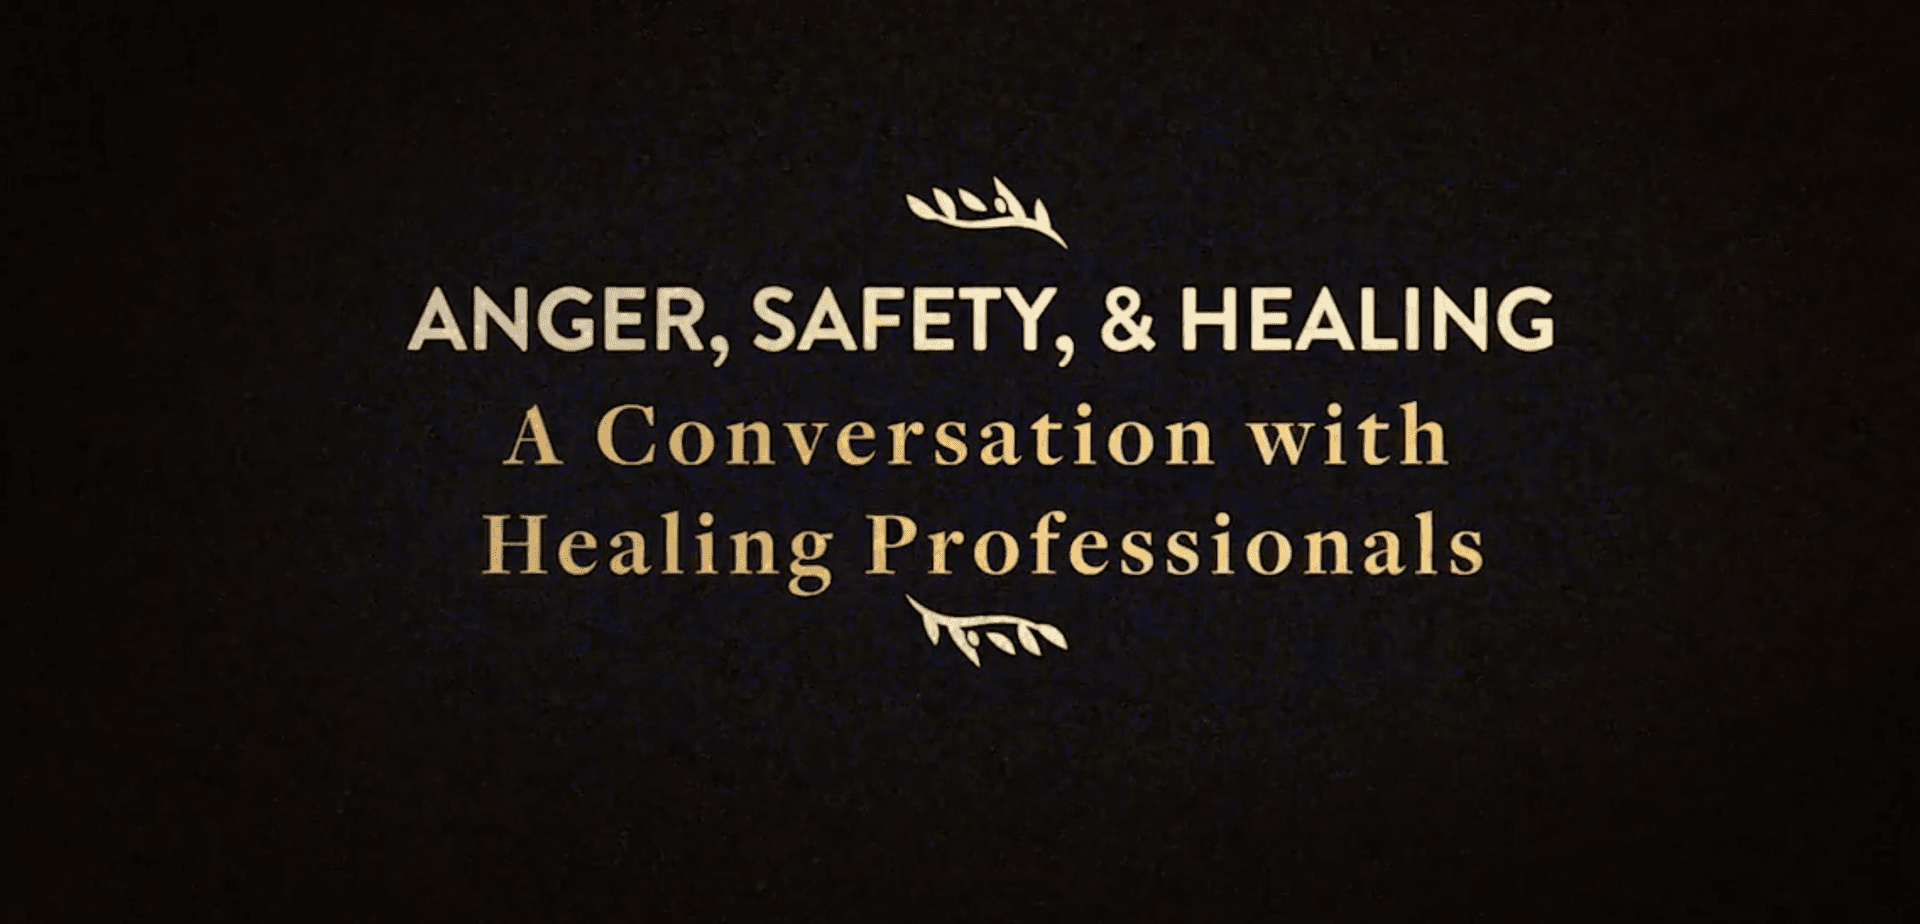 anger, safety, and healing